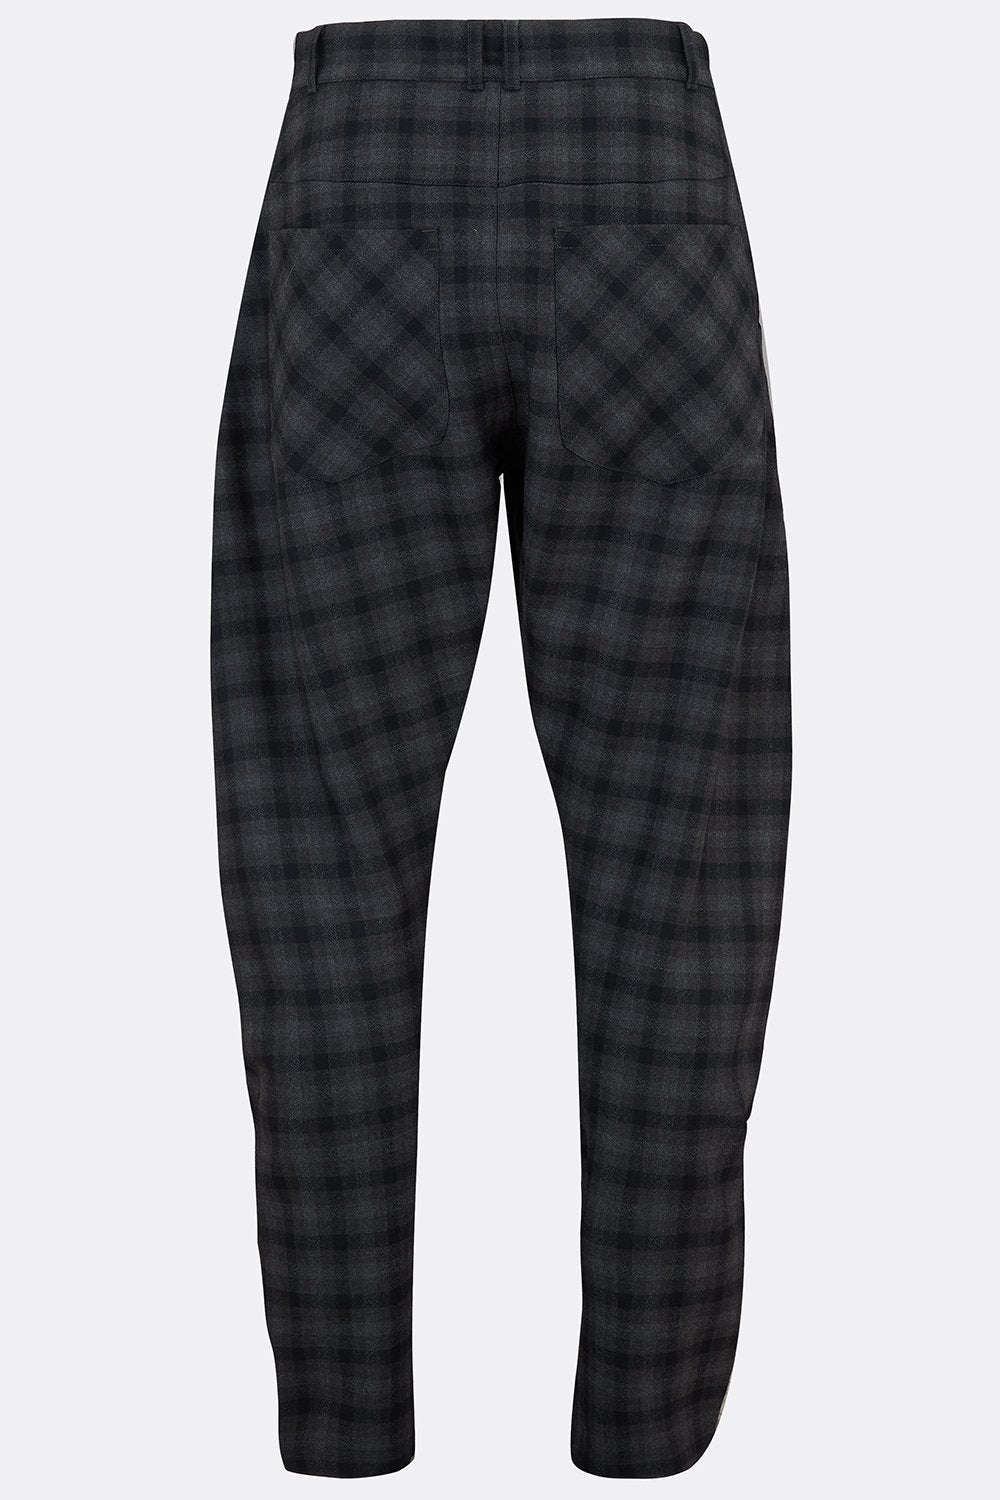 APACHE TROUSERS IN BLACK AND GREY CHECK-menswear-A Child Of The Jago